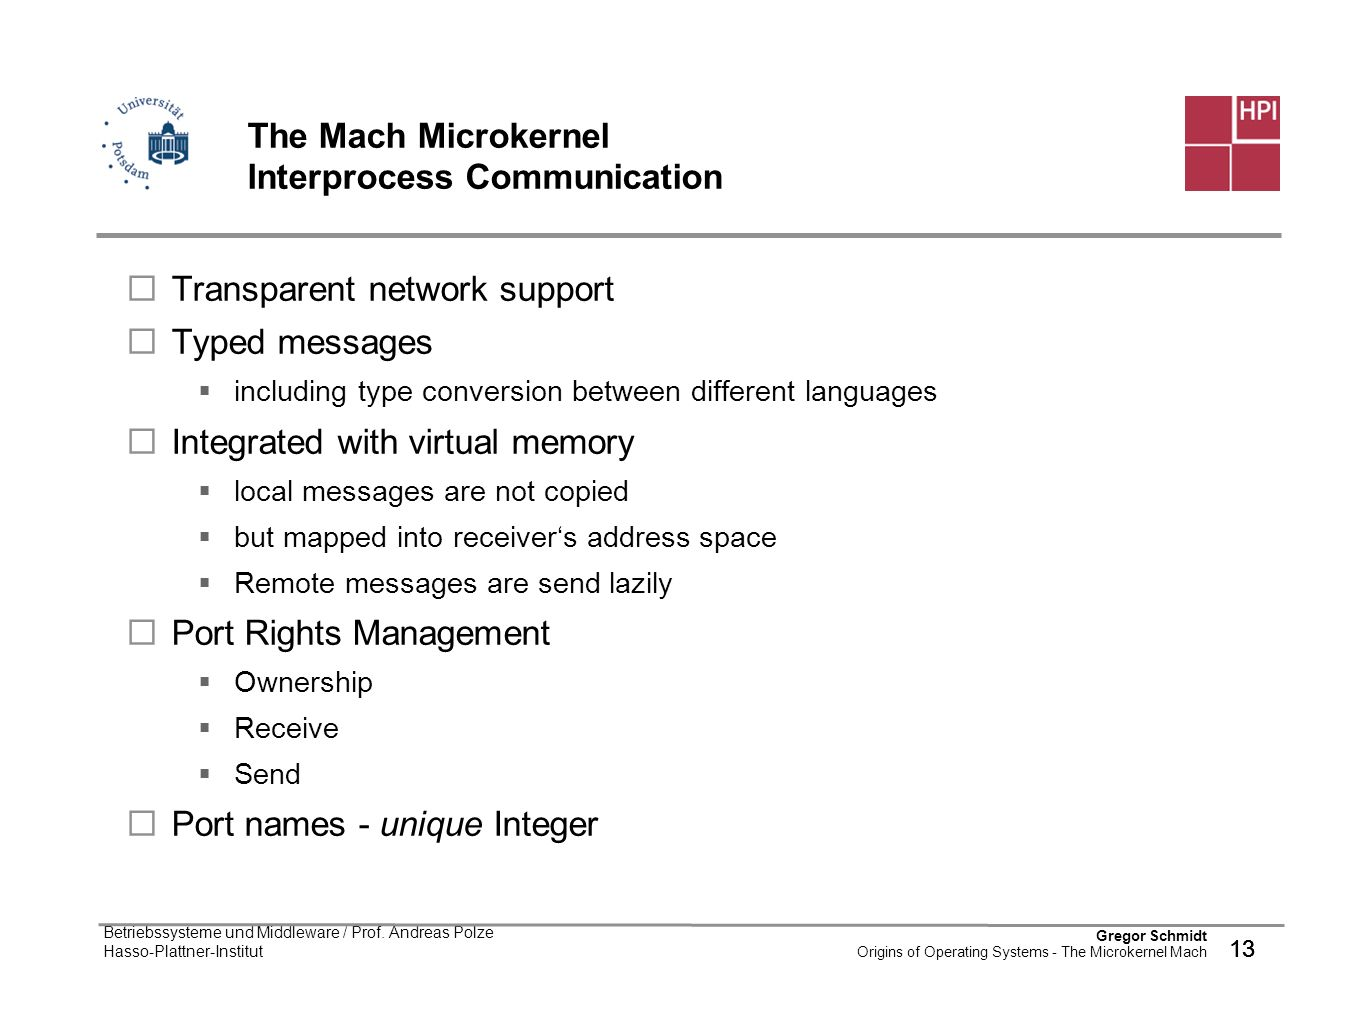 The Mach Microkernel Interprocess Communication